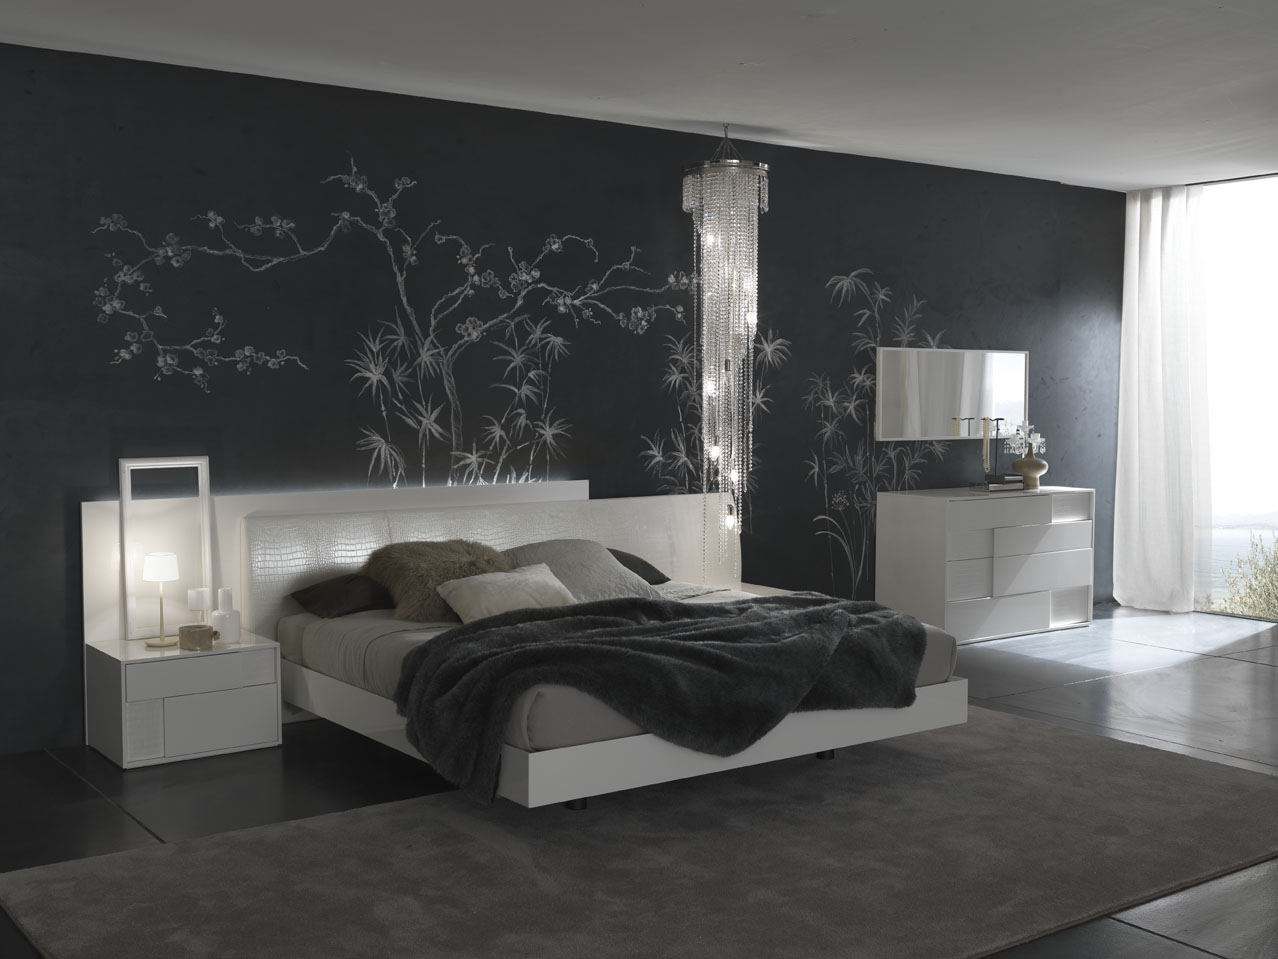 Remarkable Modern Bedroom Wall Decorating Ideas 1278 x 959 · 160 kB · jpeg